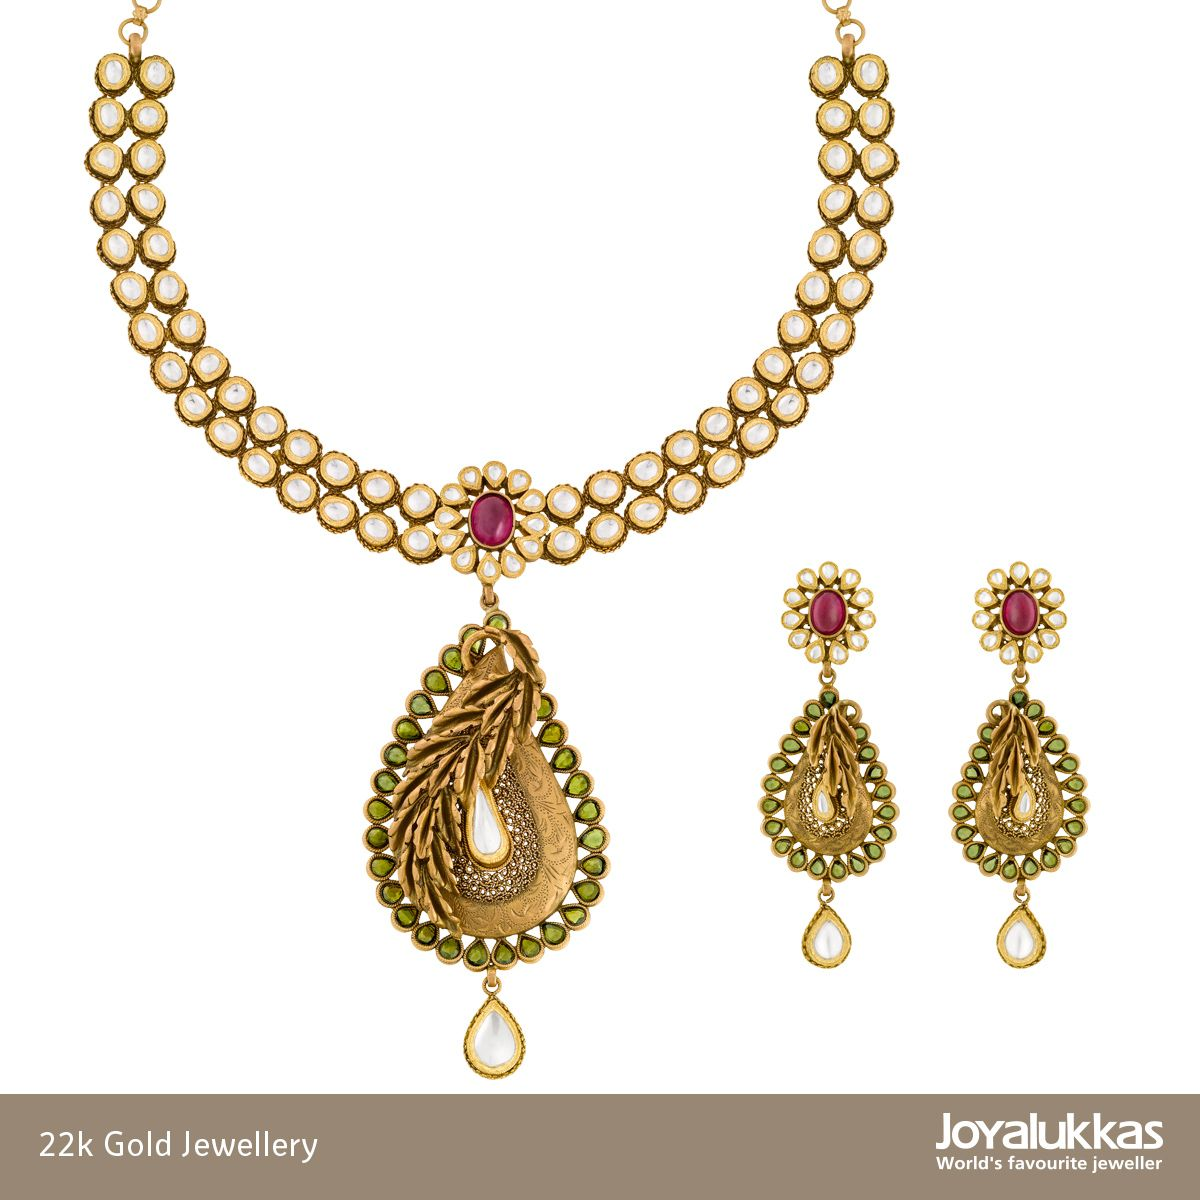 22k gold necklace set joyalukkas jewellery collection pinterest 22k gold necklace set aloadofball Image collections